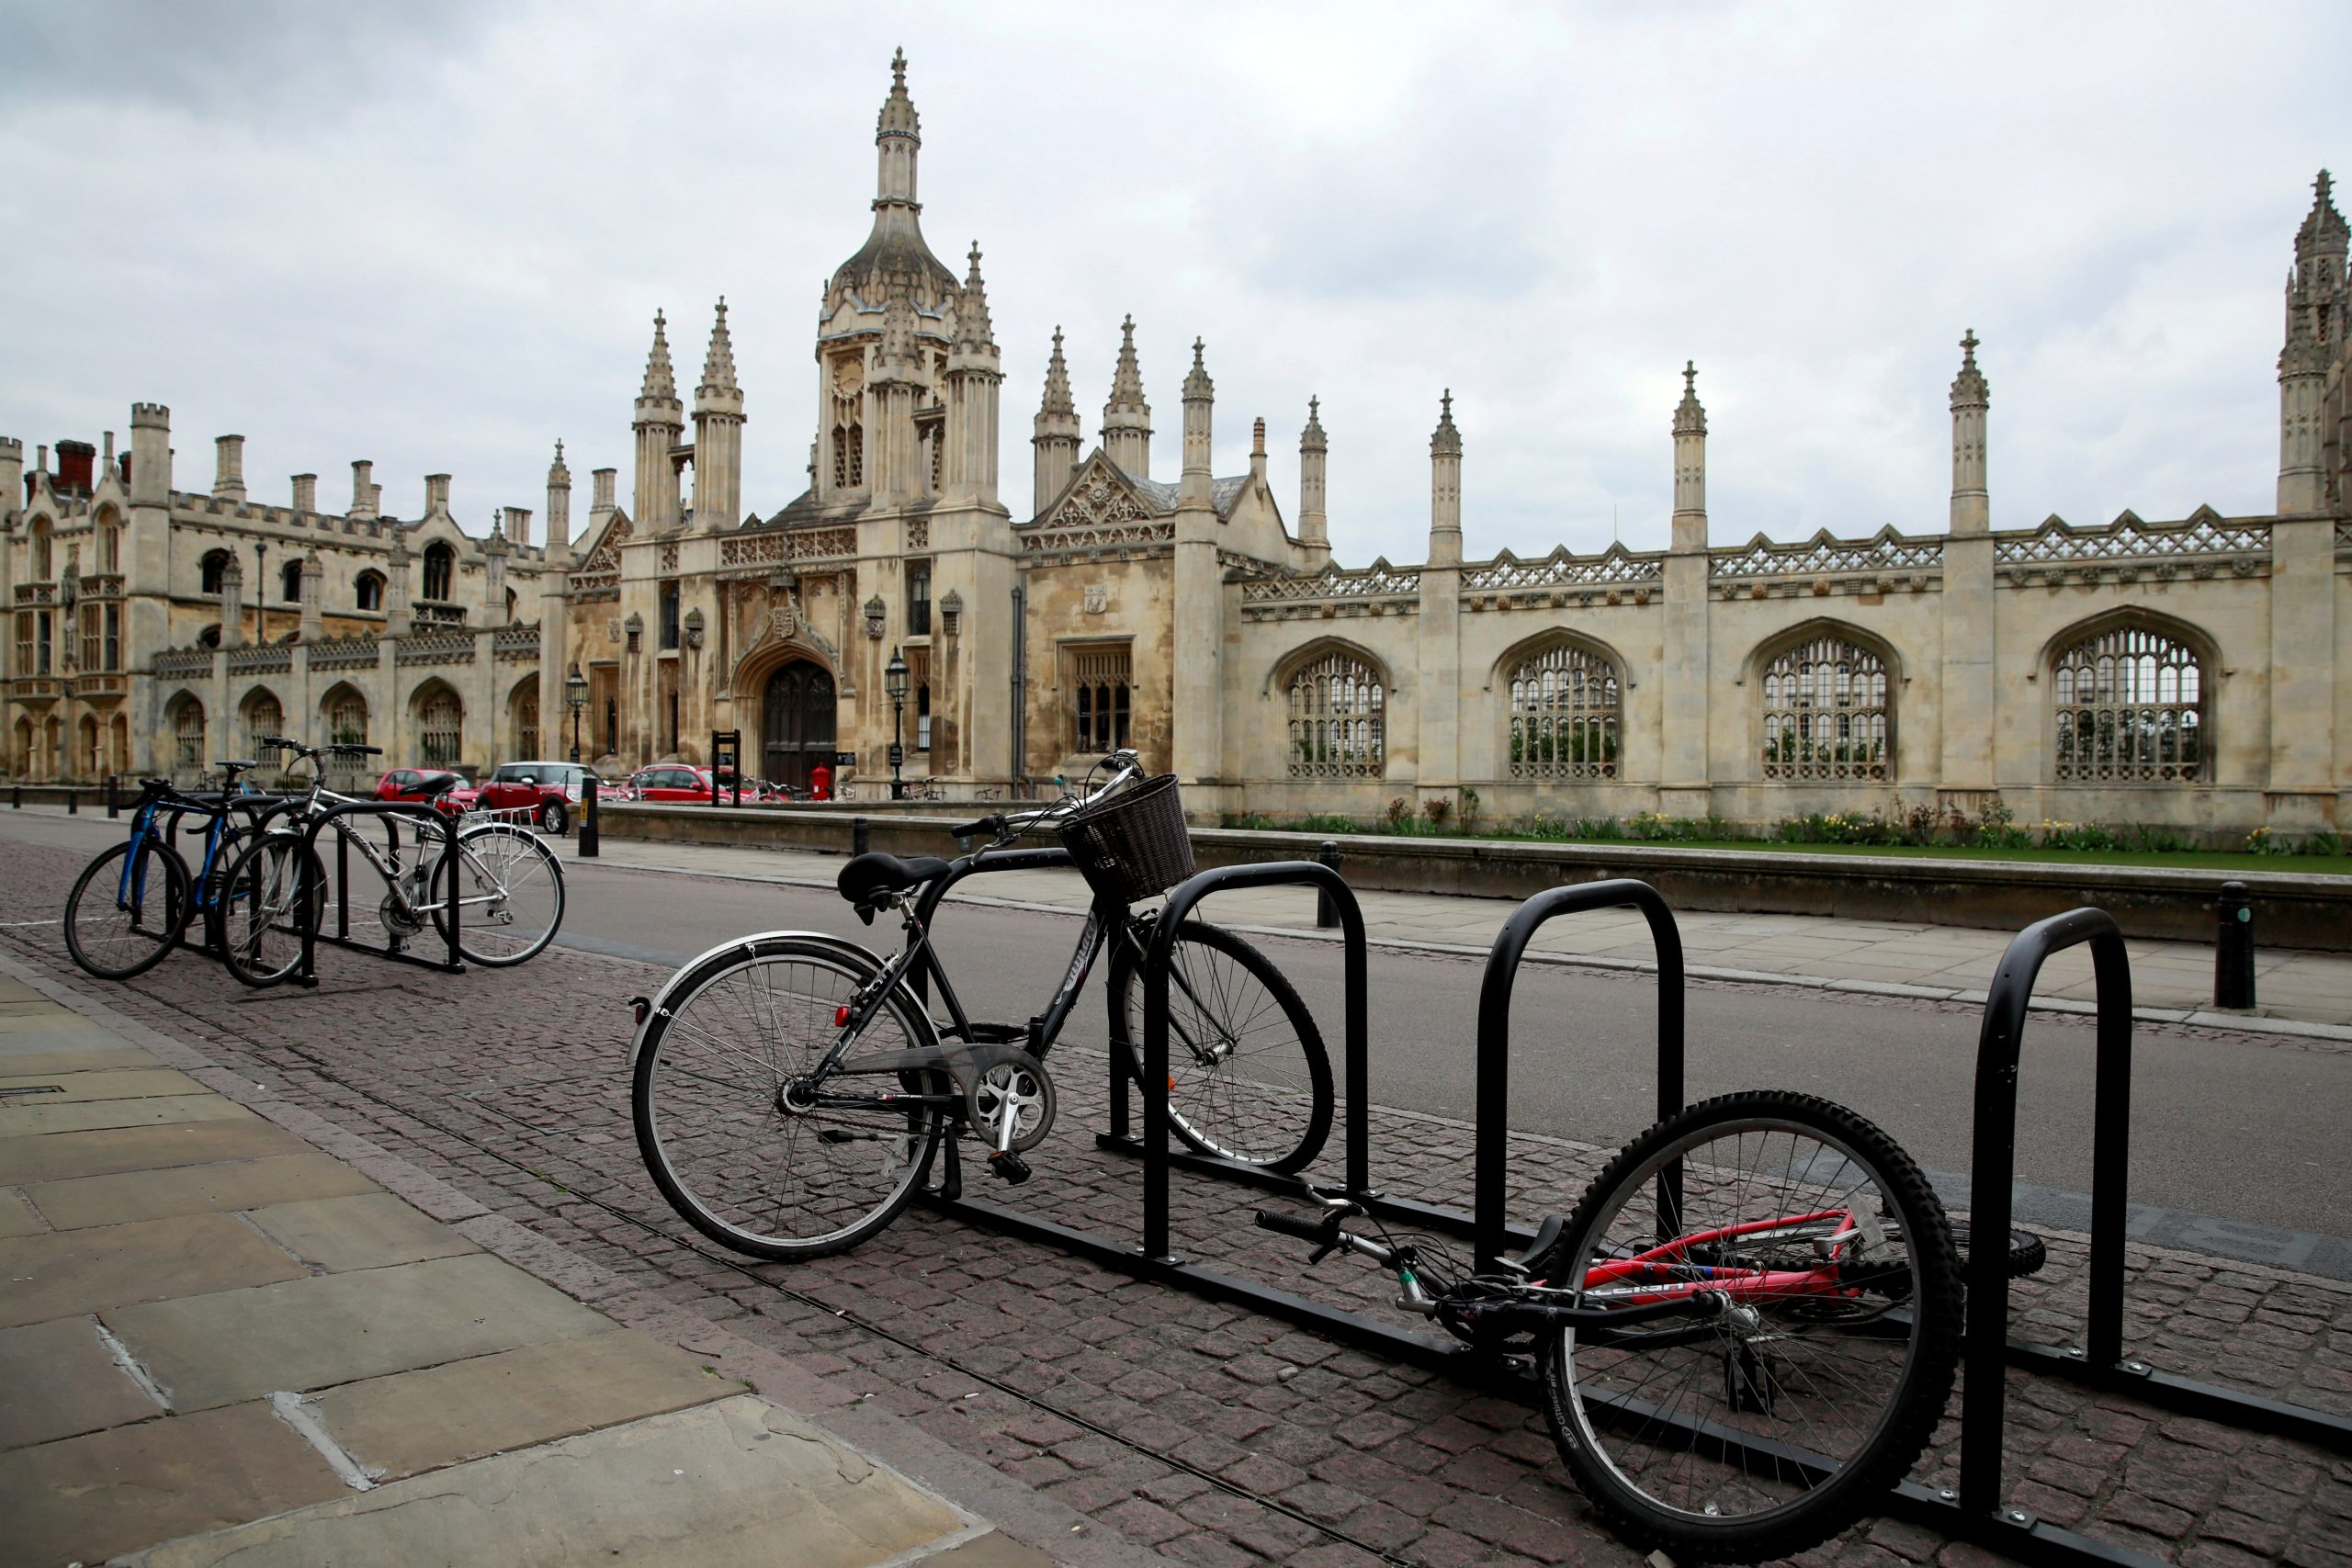 FILE PHOTO: Bikes are seen outside Cambridge University, as the spread of the coronavirus continues, Cambridge, Britain, April 1, 2020. (REUTERS/Andrew Couldridge)